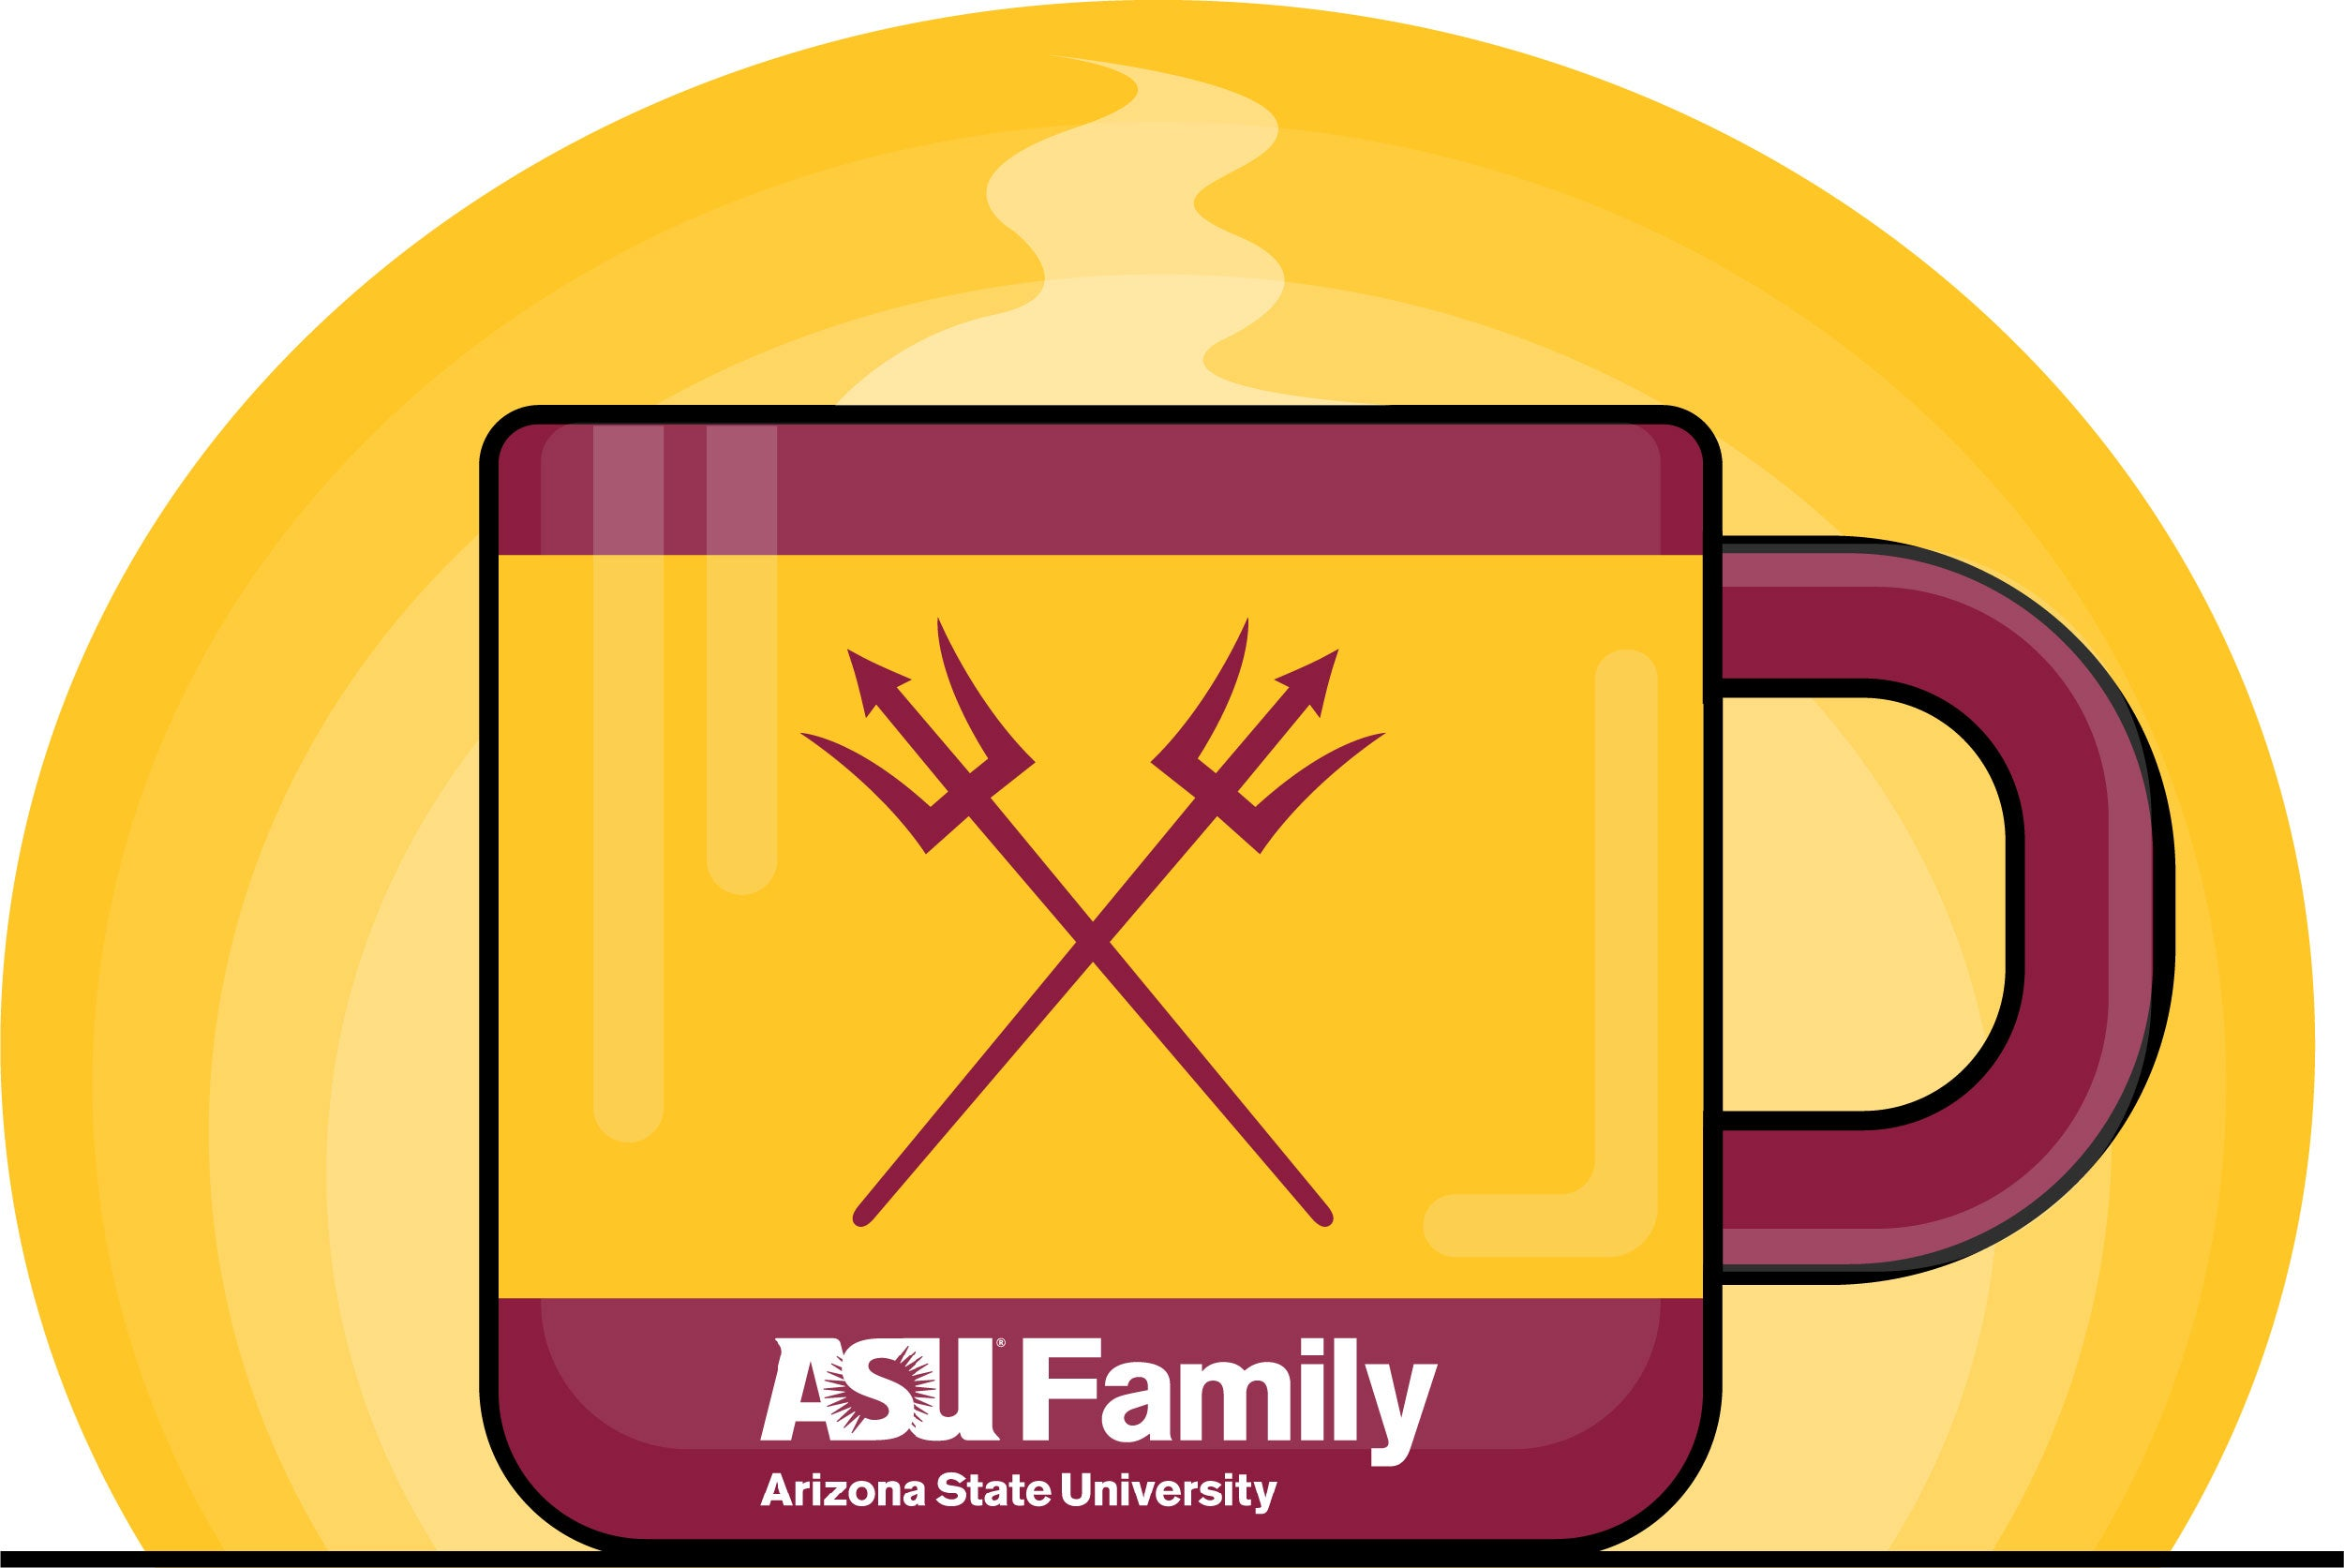 Maroon and gold coffee cup design with ASU Family logo at the base